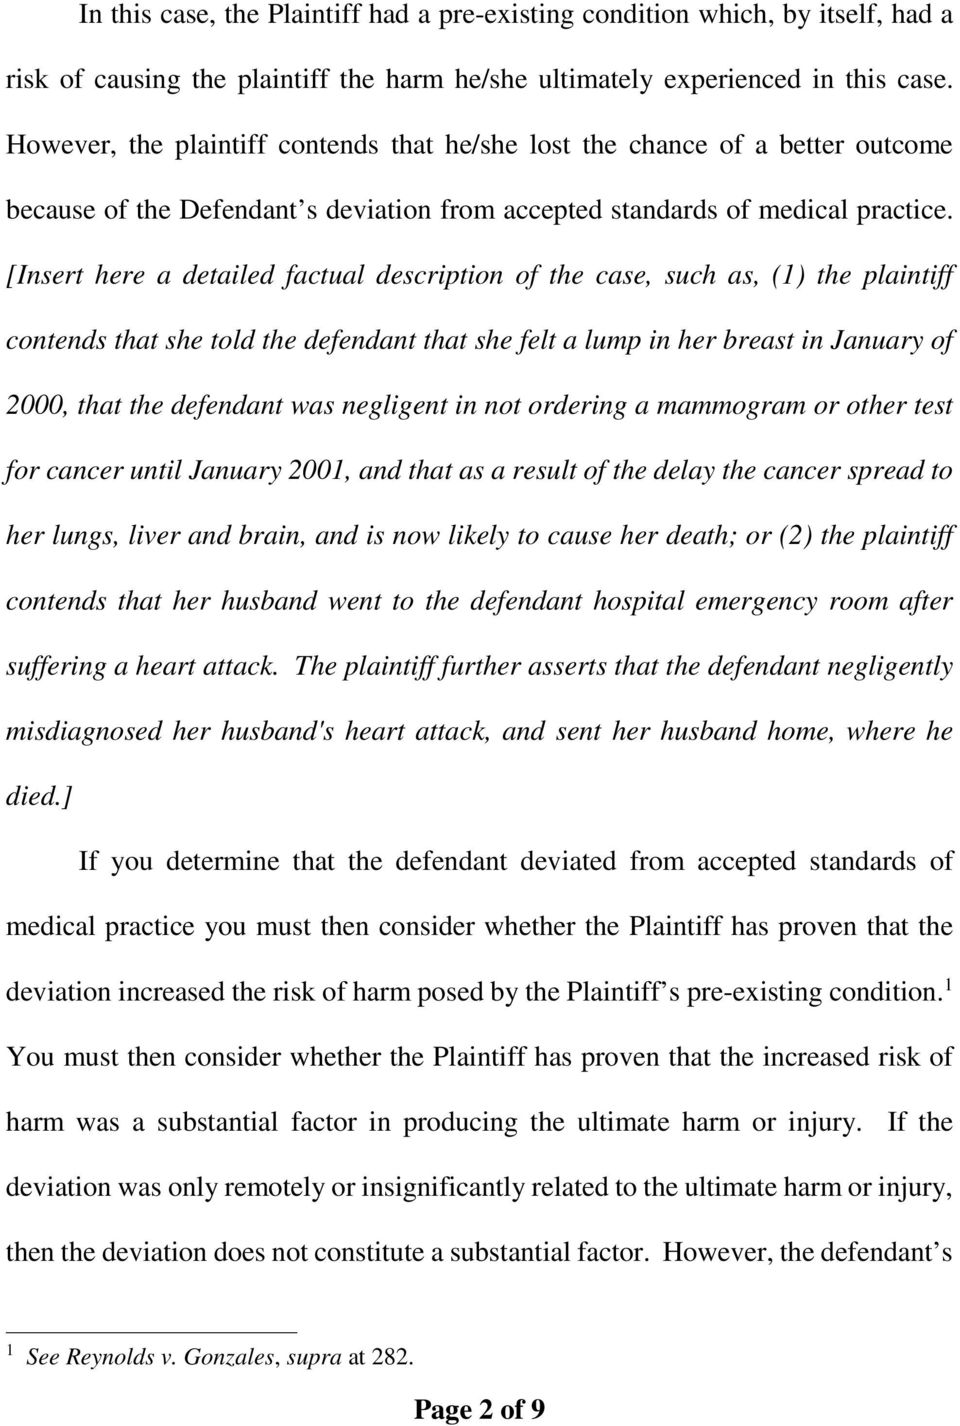 [Insert here a detailed factual description of the case, such as, (1) the plaintiff contends that she told the defendant that she felt a lump in her breast in January of 2000, that the defendant was